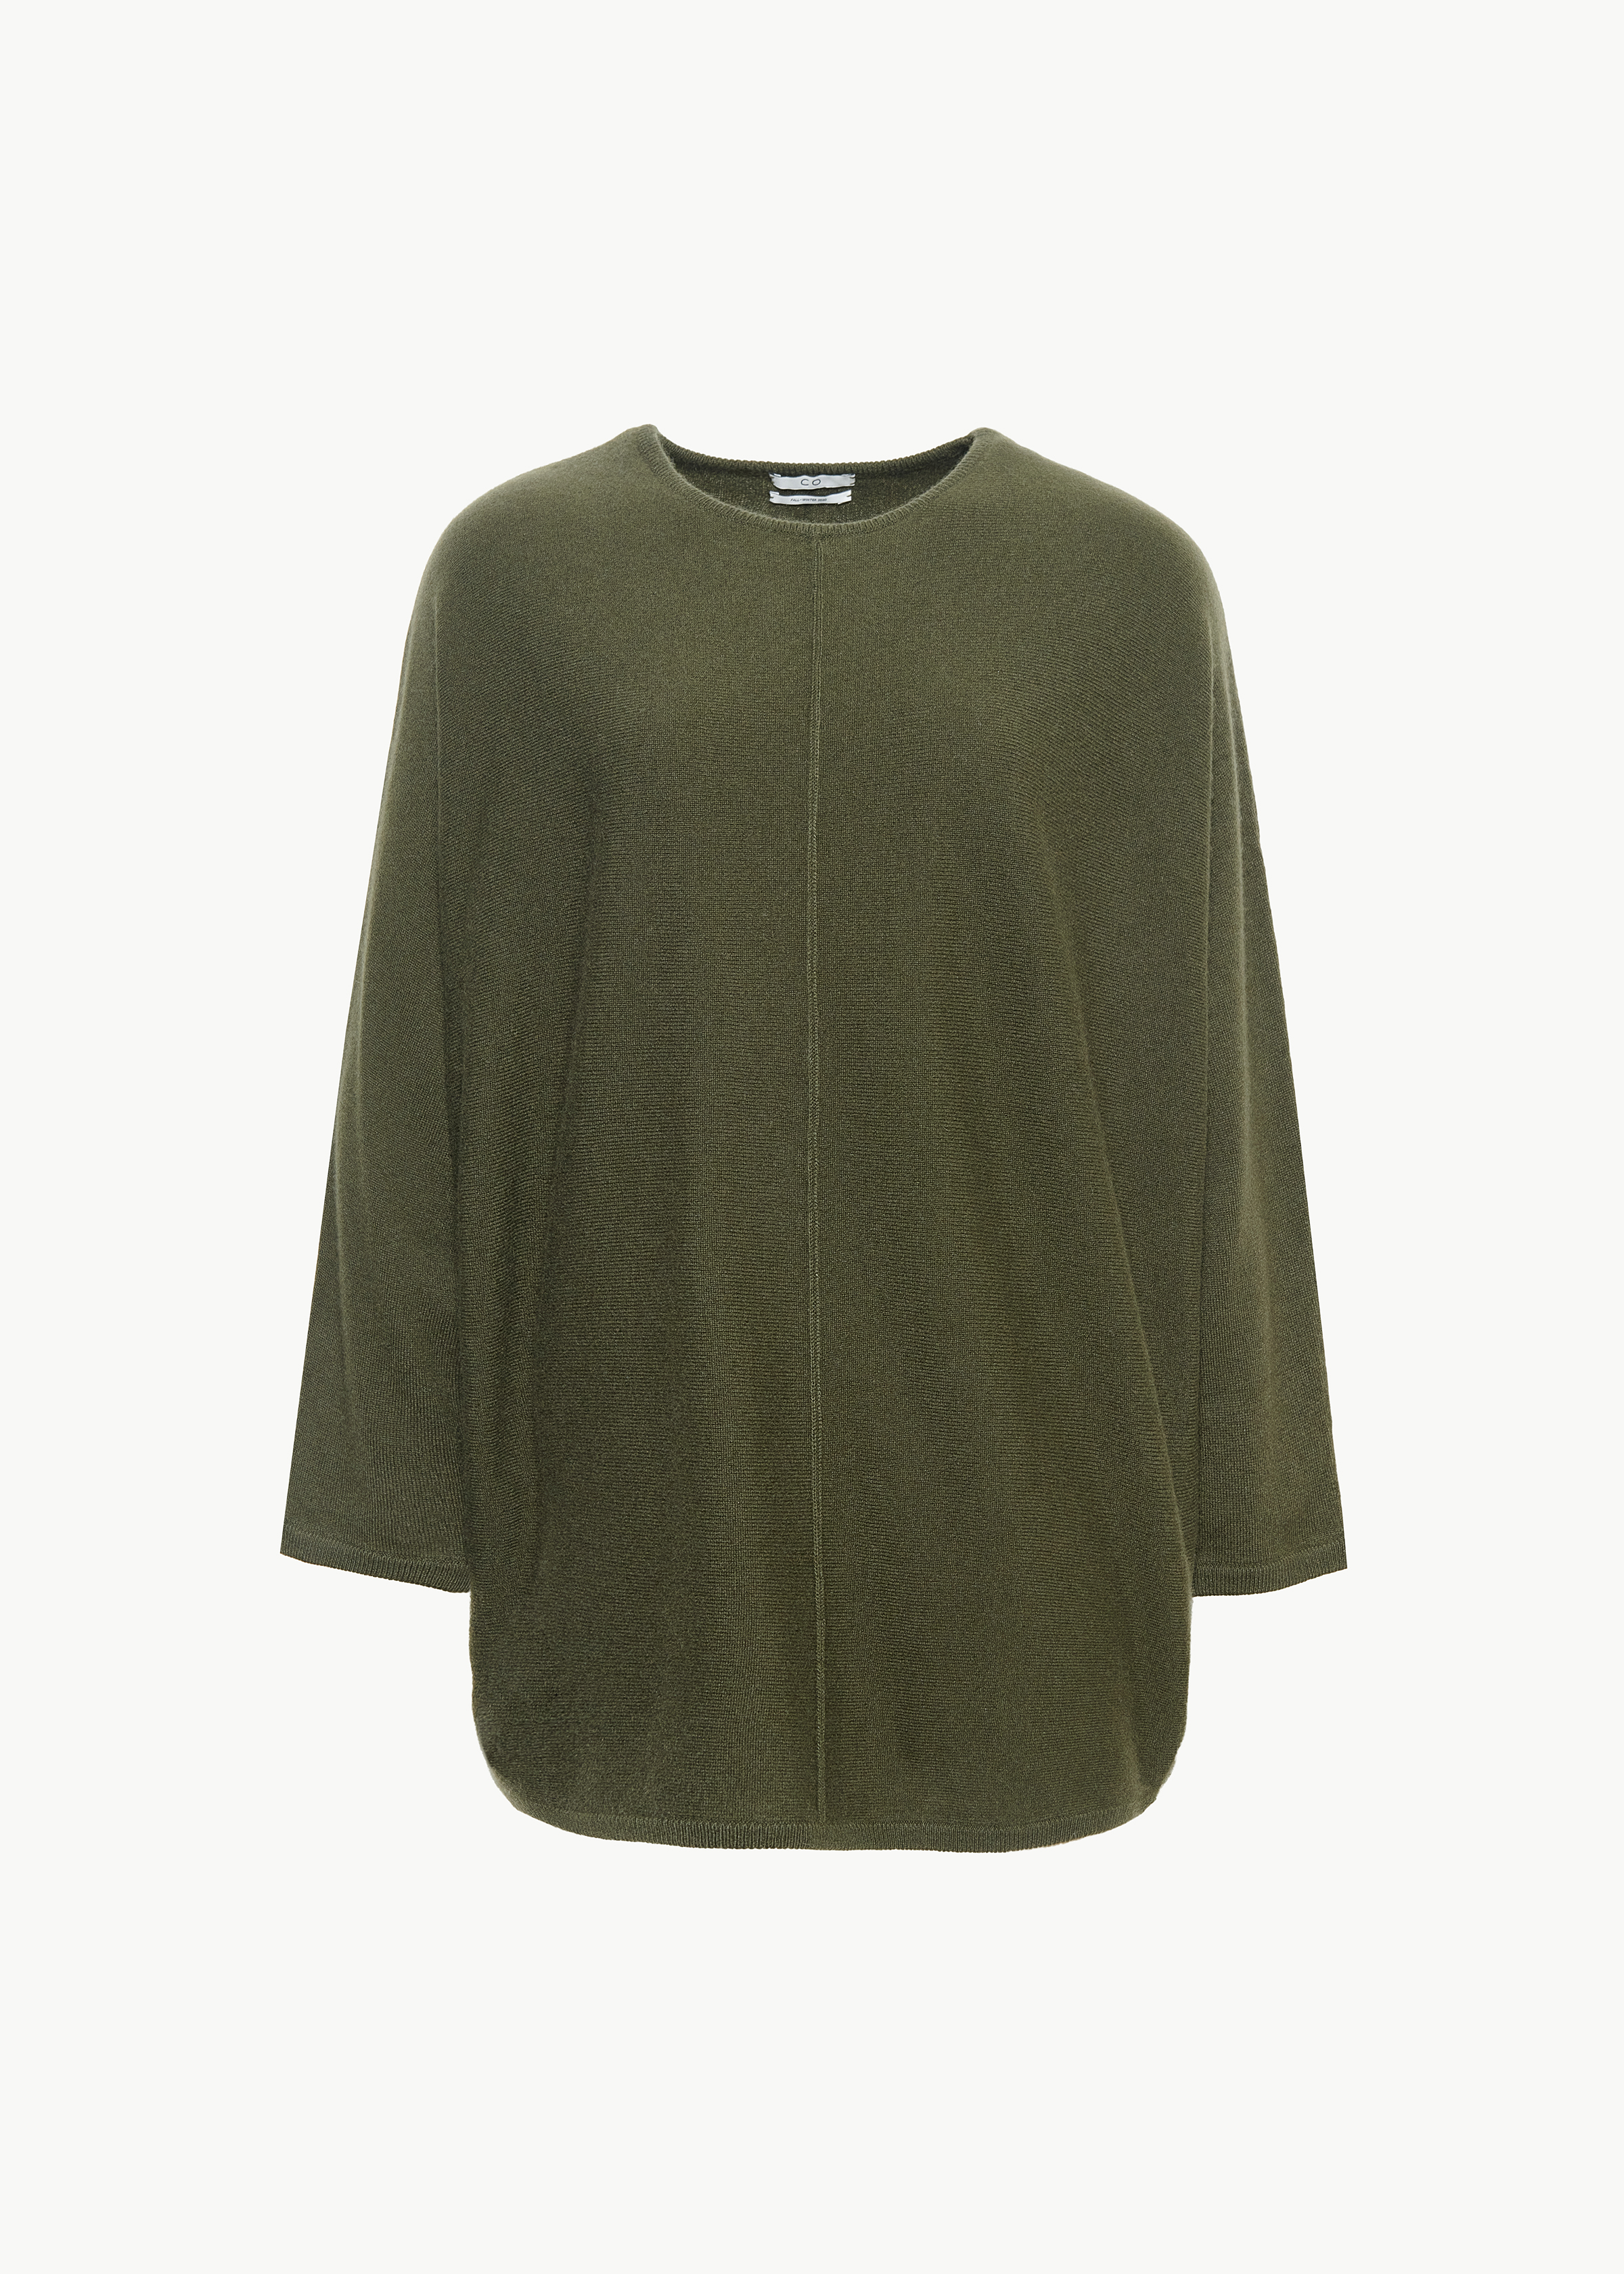 Crew Neck Dolman Sleeve Sweater in Cashmere - Chocolate in Olive by Co Collections